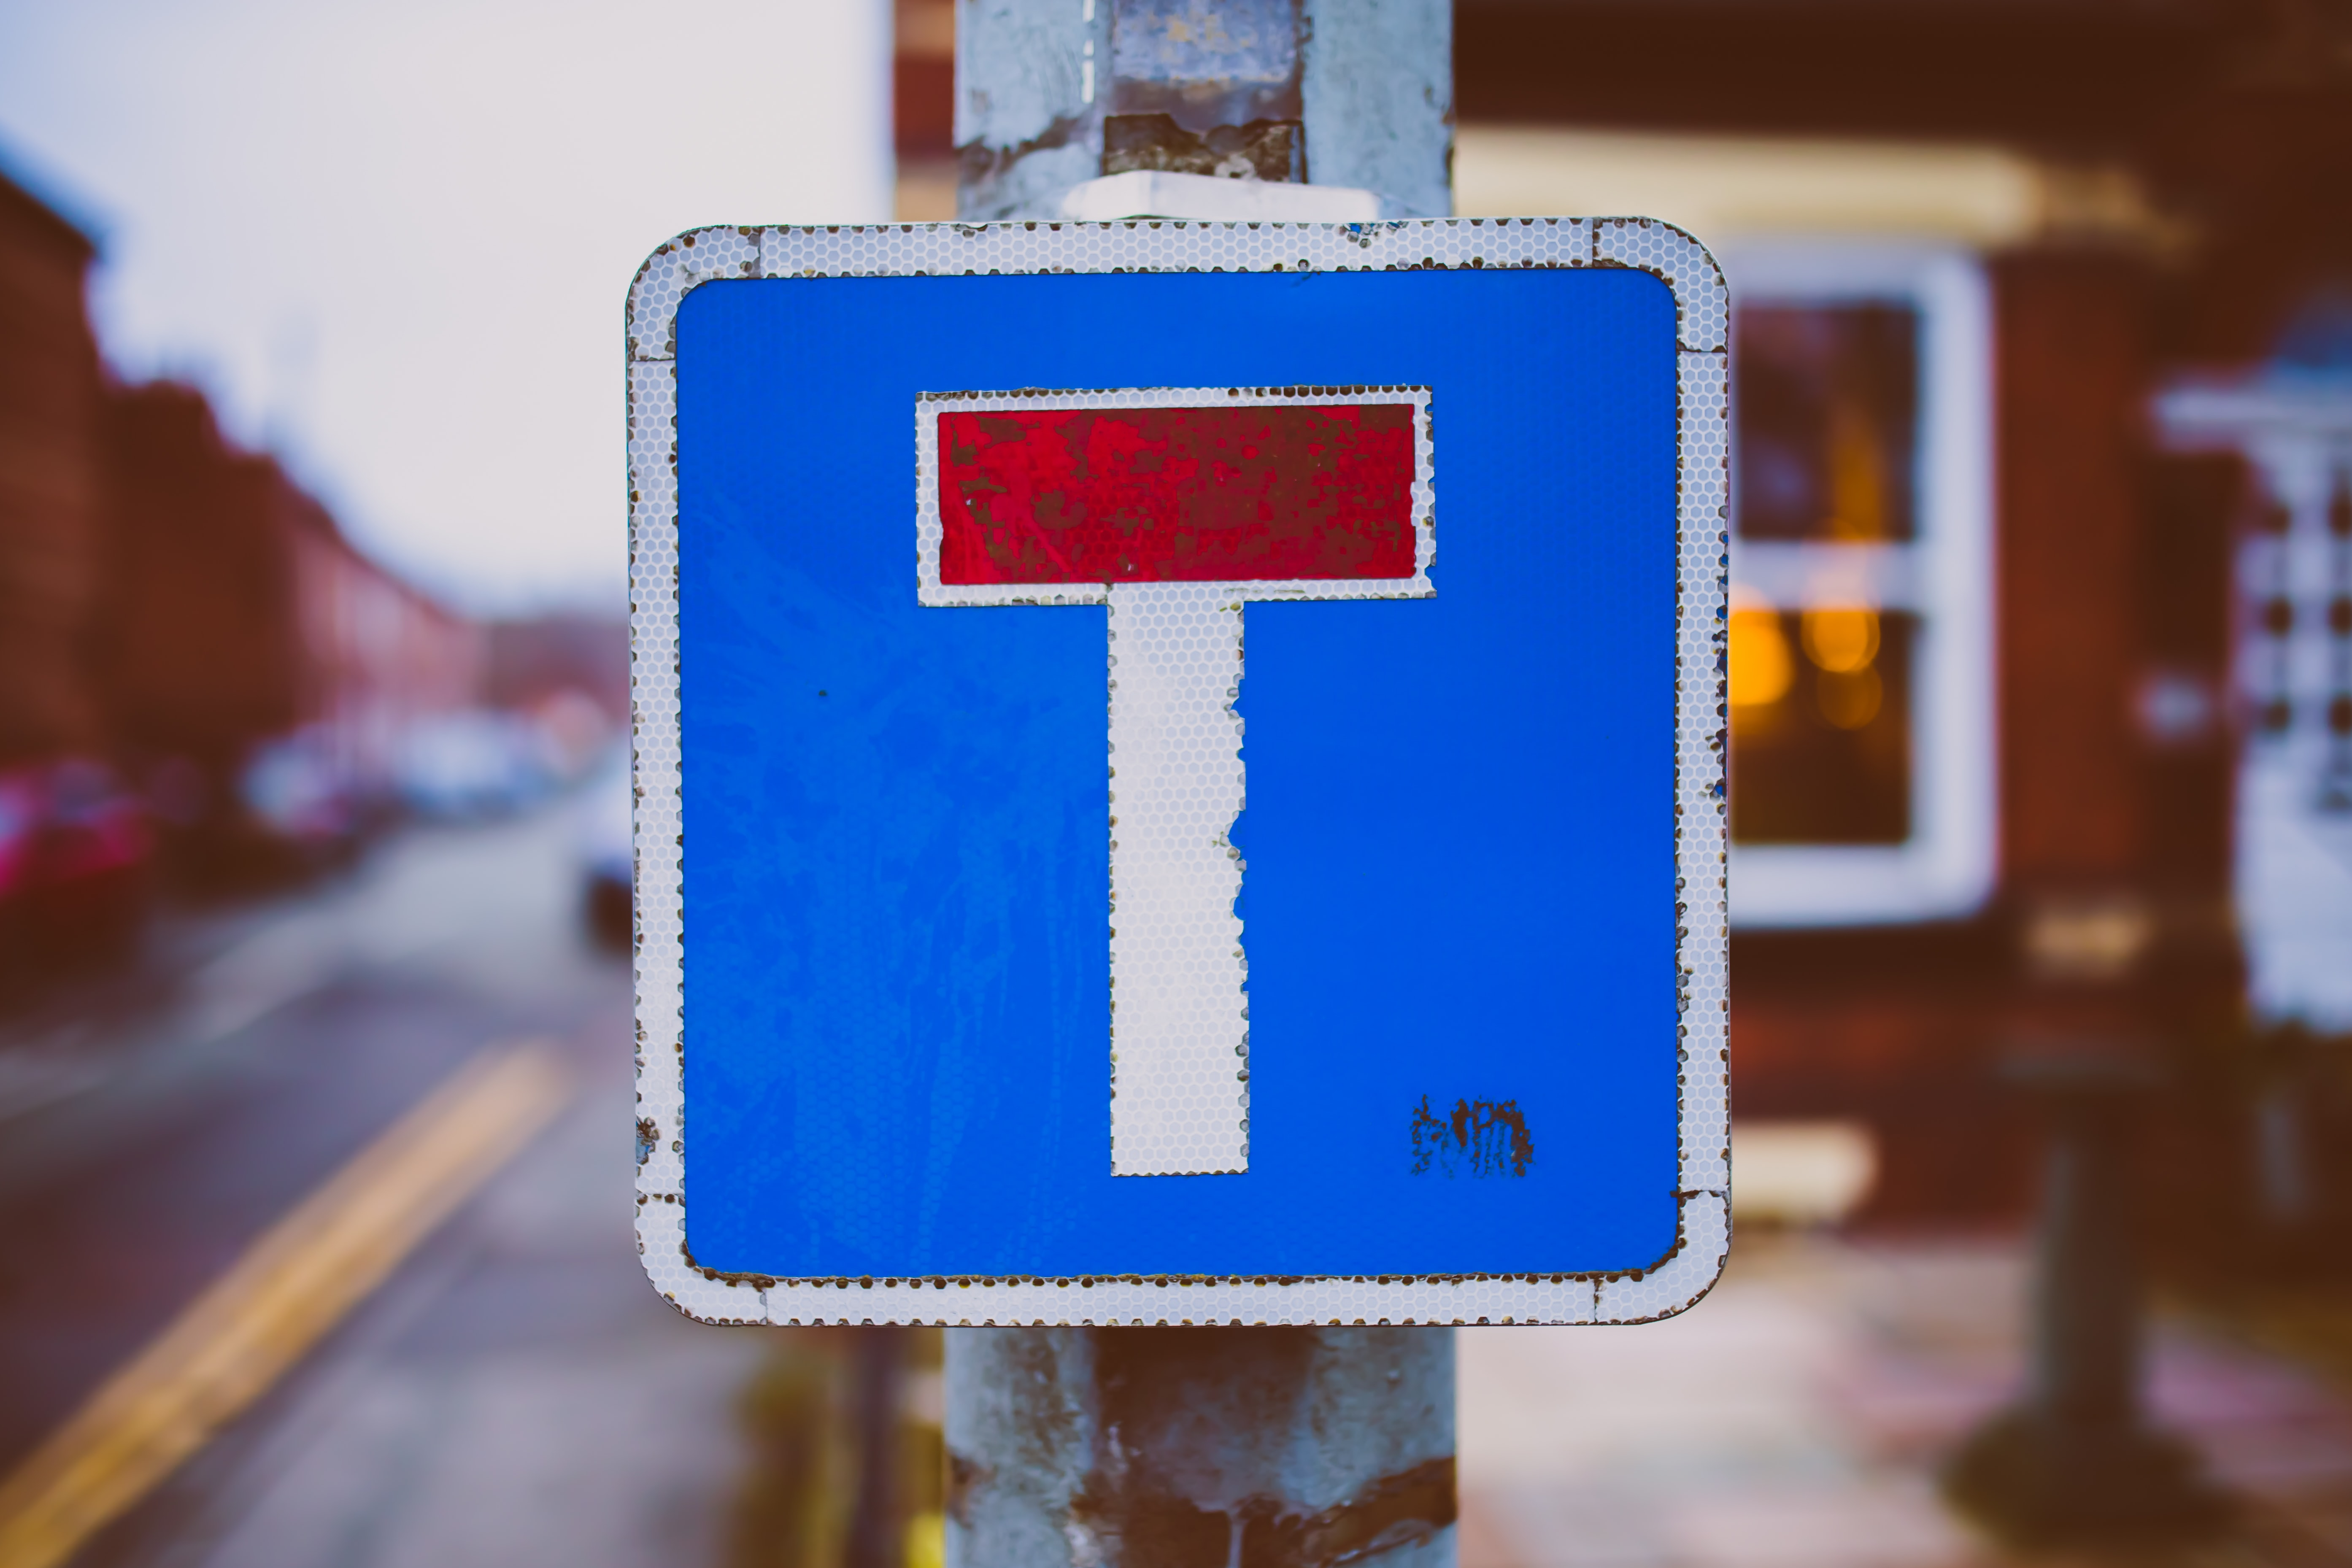 white, blue, and red road sign near road